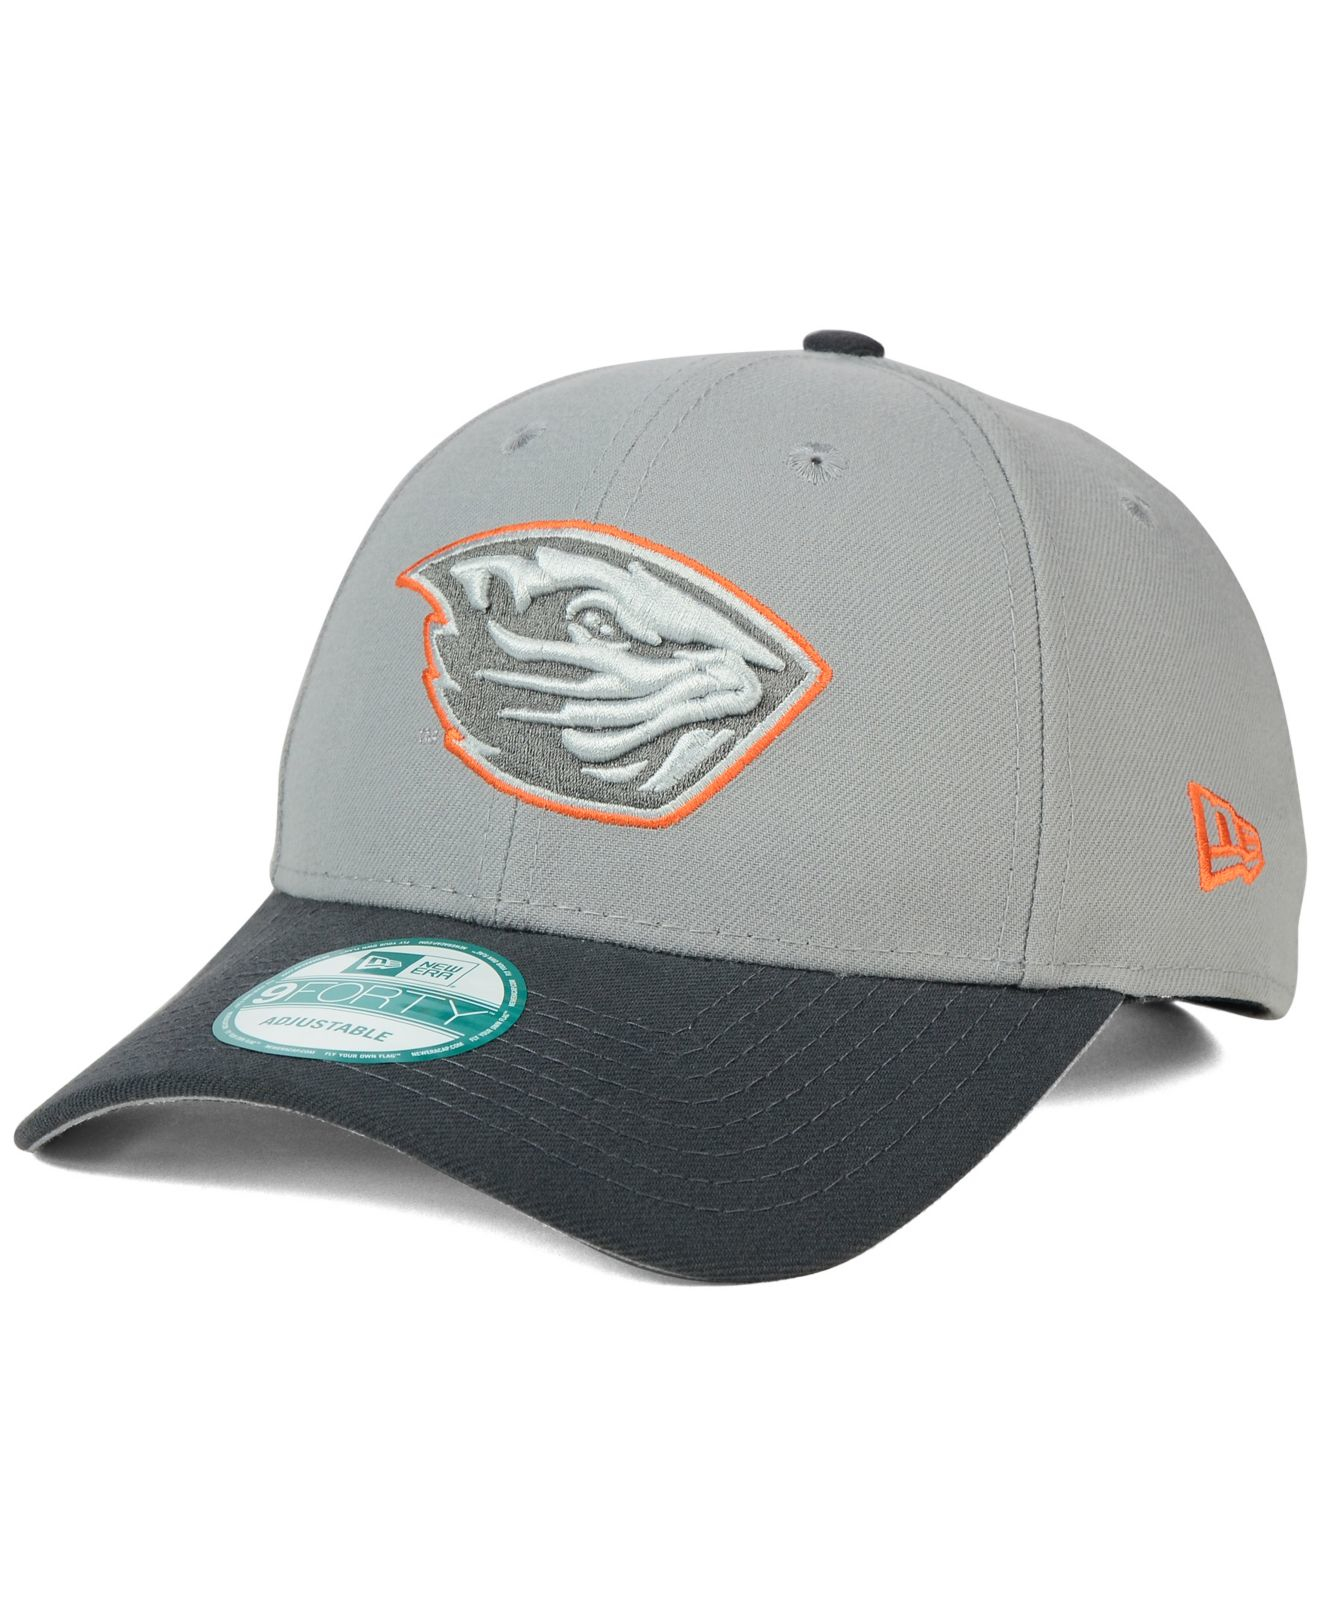 049f19ad0cc Lyst - KTZ Oregon State Beavers The League 9forty Cap in Gray for Men